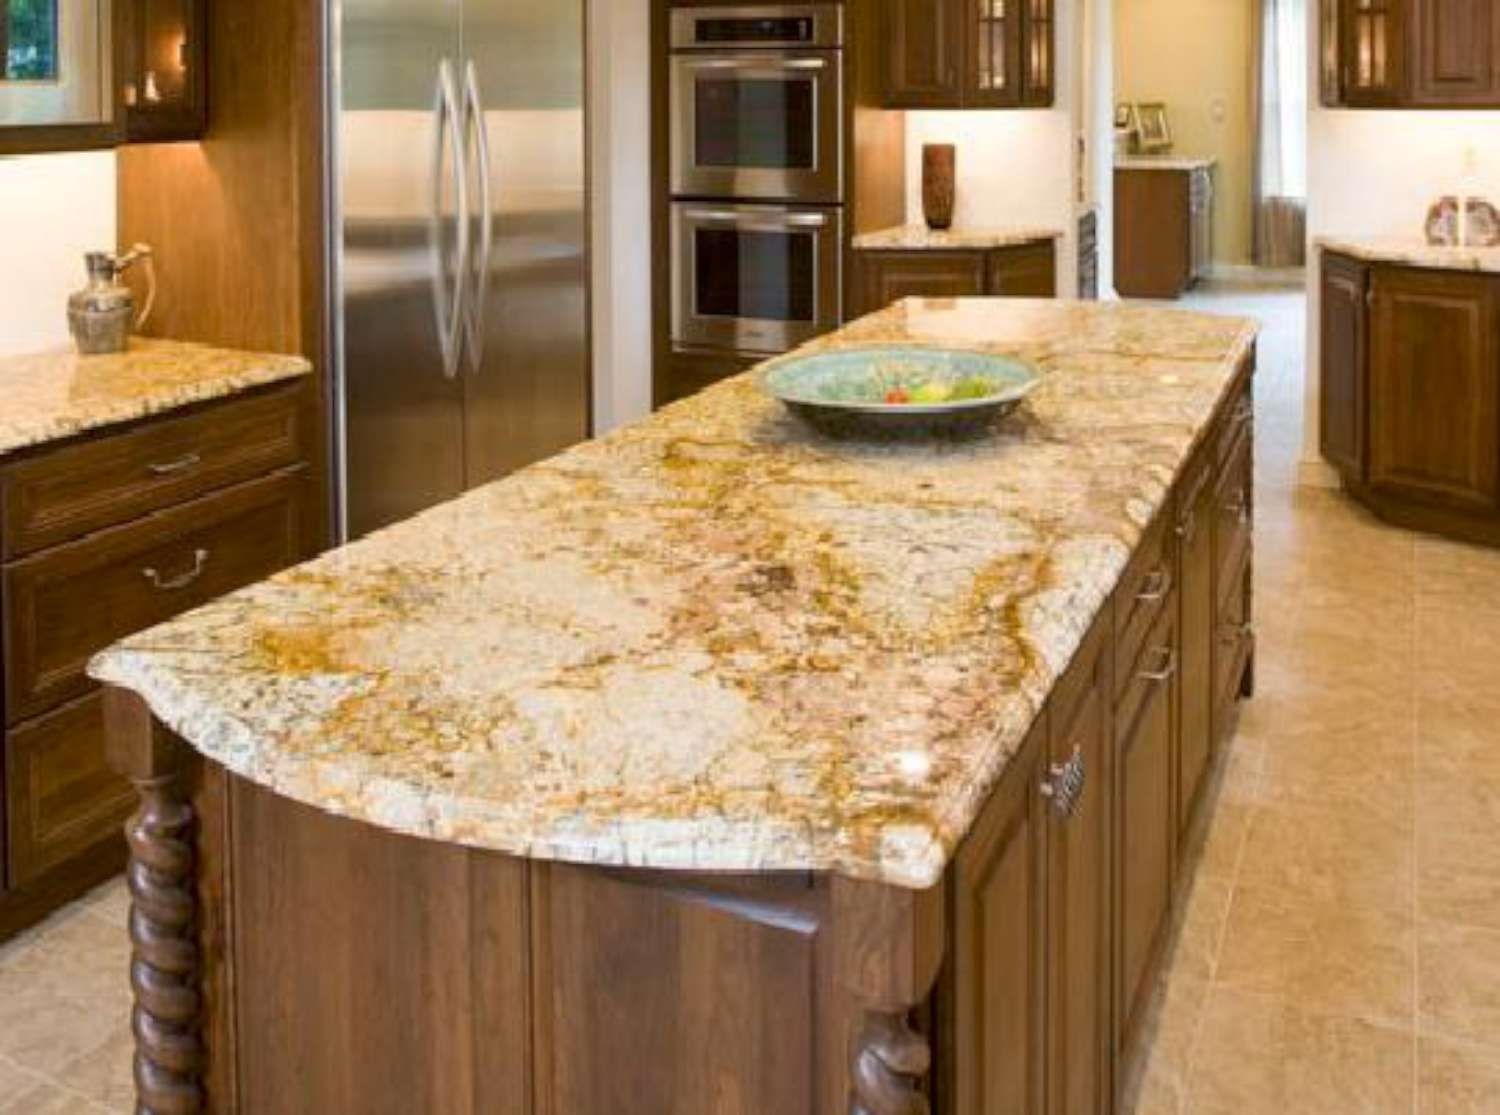 30 Granite Countertop Colors Inspiring Pictures Hd Interior Decorating Colors Kitchen Cabinets And Countertops Kitchen Countertops White Granite Countertops Kitchen